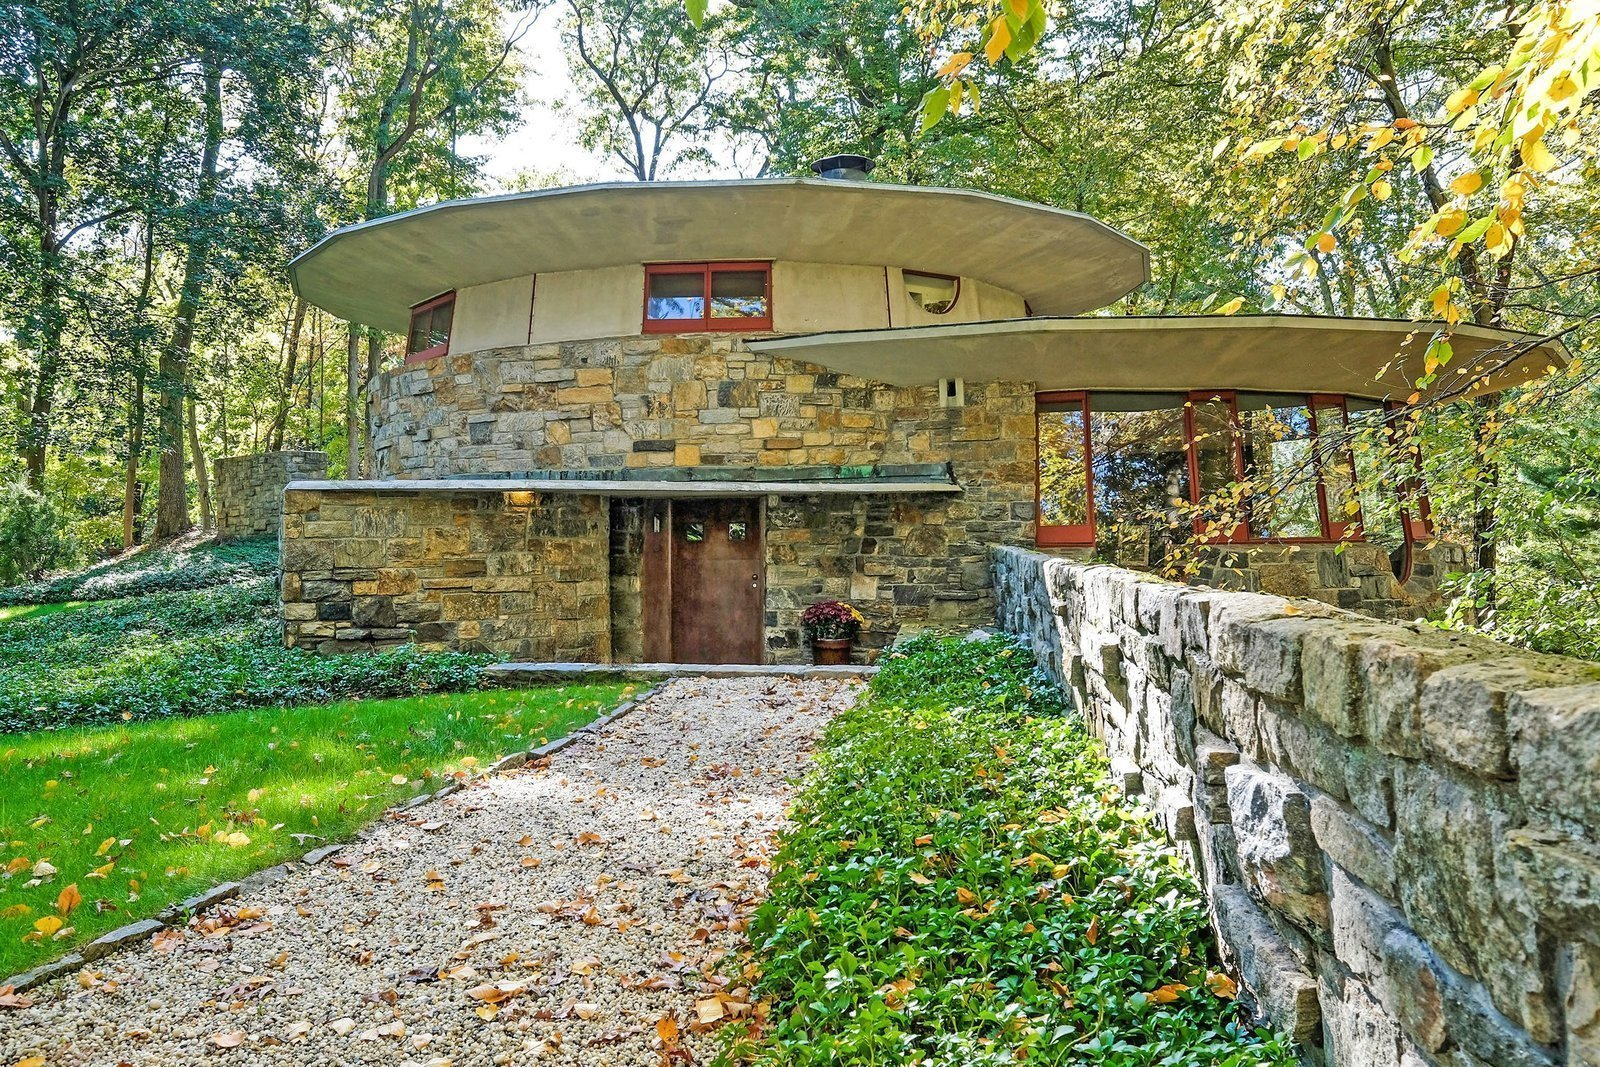 Exterior, Stone Siding Material, Concrete Siding Material, and House Building Type Built in 1948 and named 'Toyhill' by Wright himself, this Usonian home is considered an artistic masterpiece and shows Wright's early interest in overlapping circular masonry, which would become an innovative and iconic treatment found in his later work—including the Guggenheim Museum.  Photo 2 of 7 in What You Need to Know About Frank Lloyd Wright's Usonian Homes